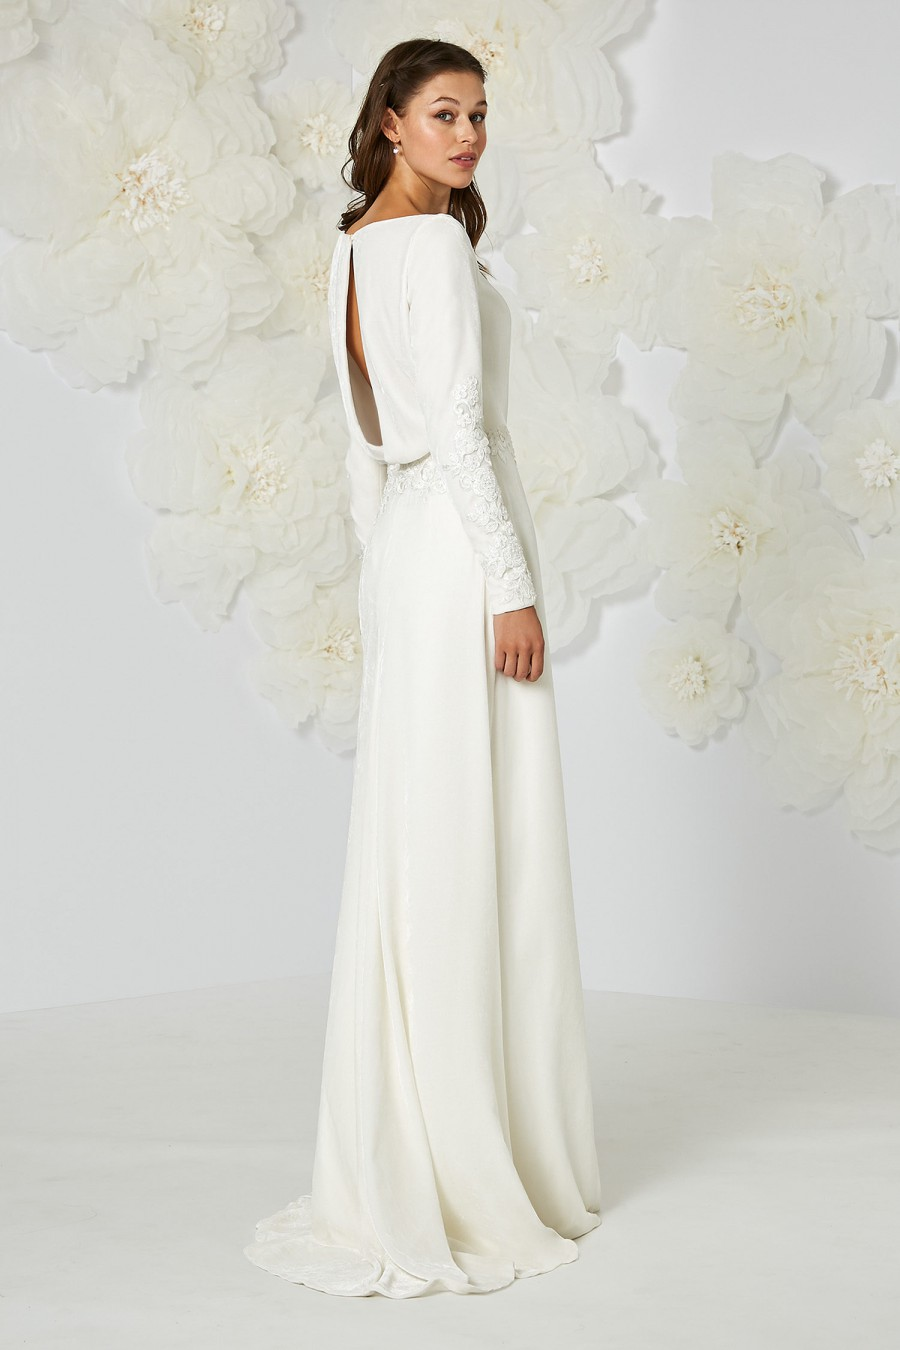 40 snow ready winter wedding dresses atelier eme junglespirit Image collections